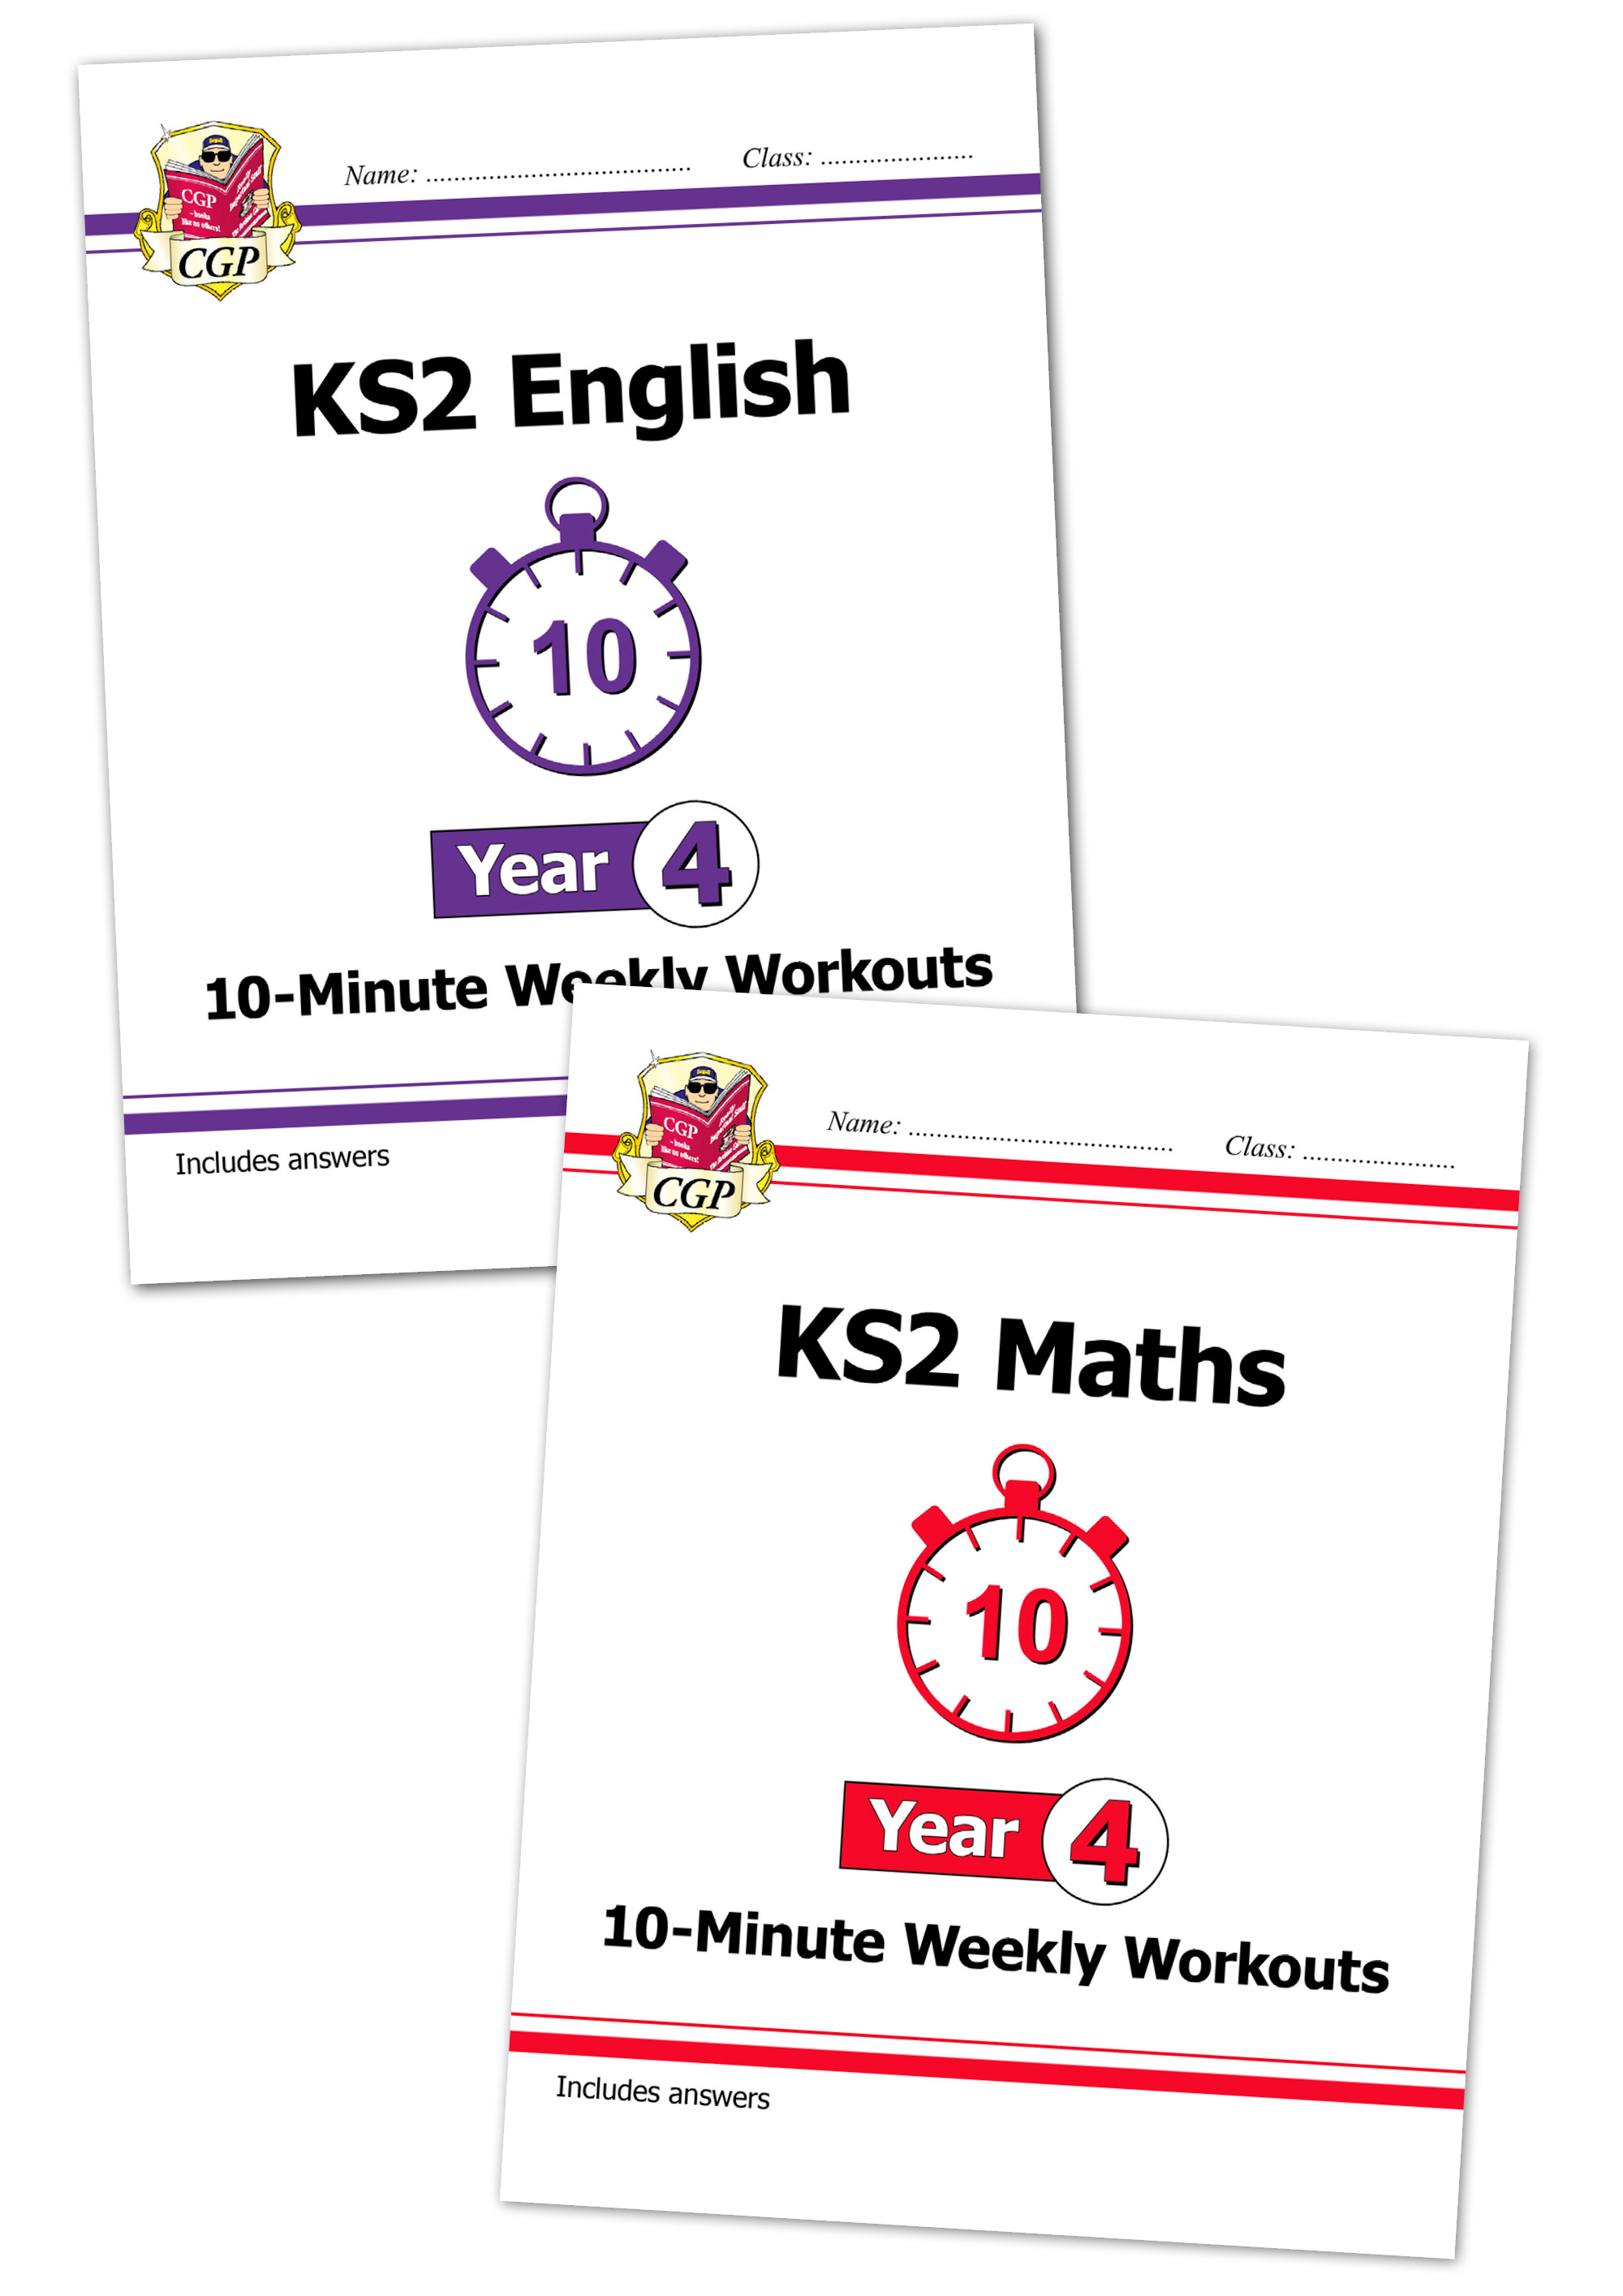 EM4XWB21 - New KS2 Maths and English 10-Minute Weekly Workouts Bundle - Year 4